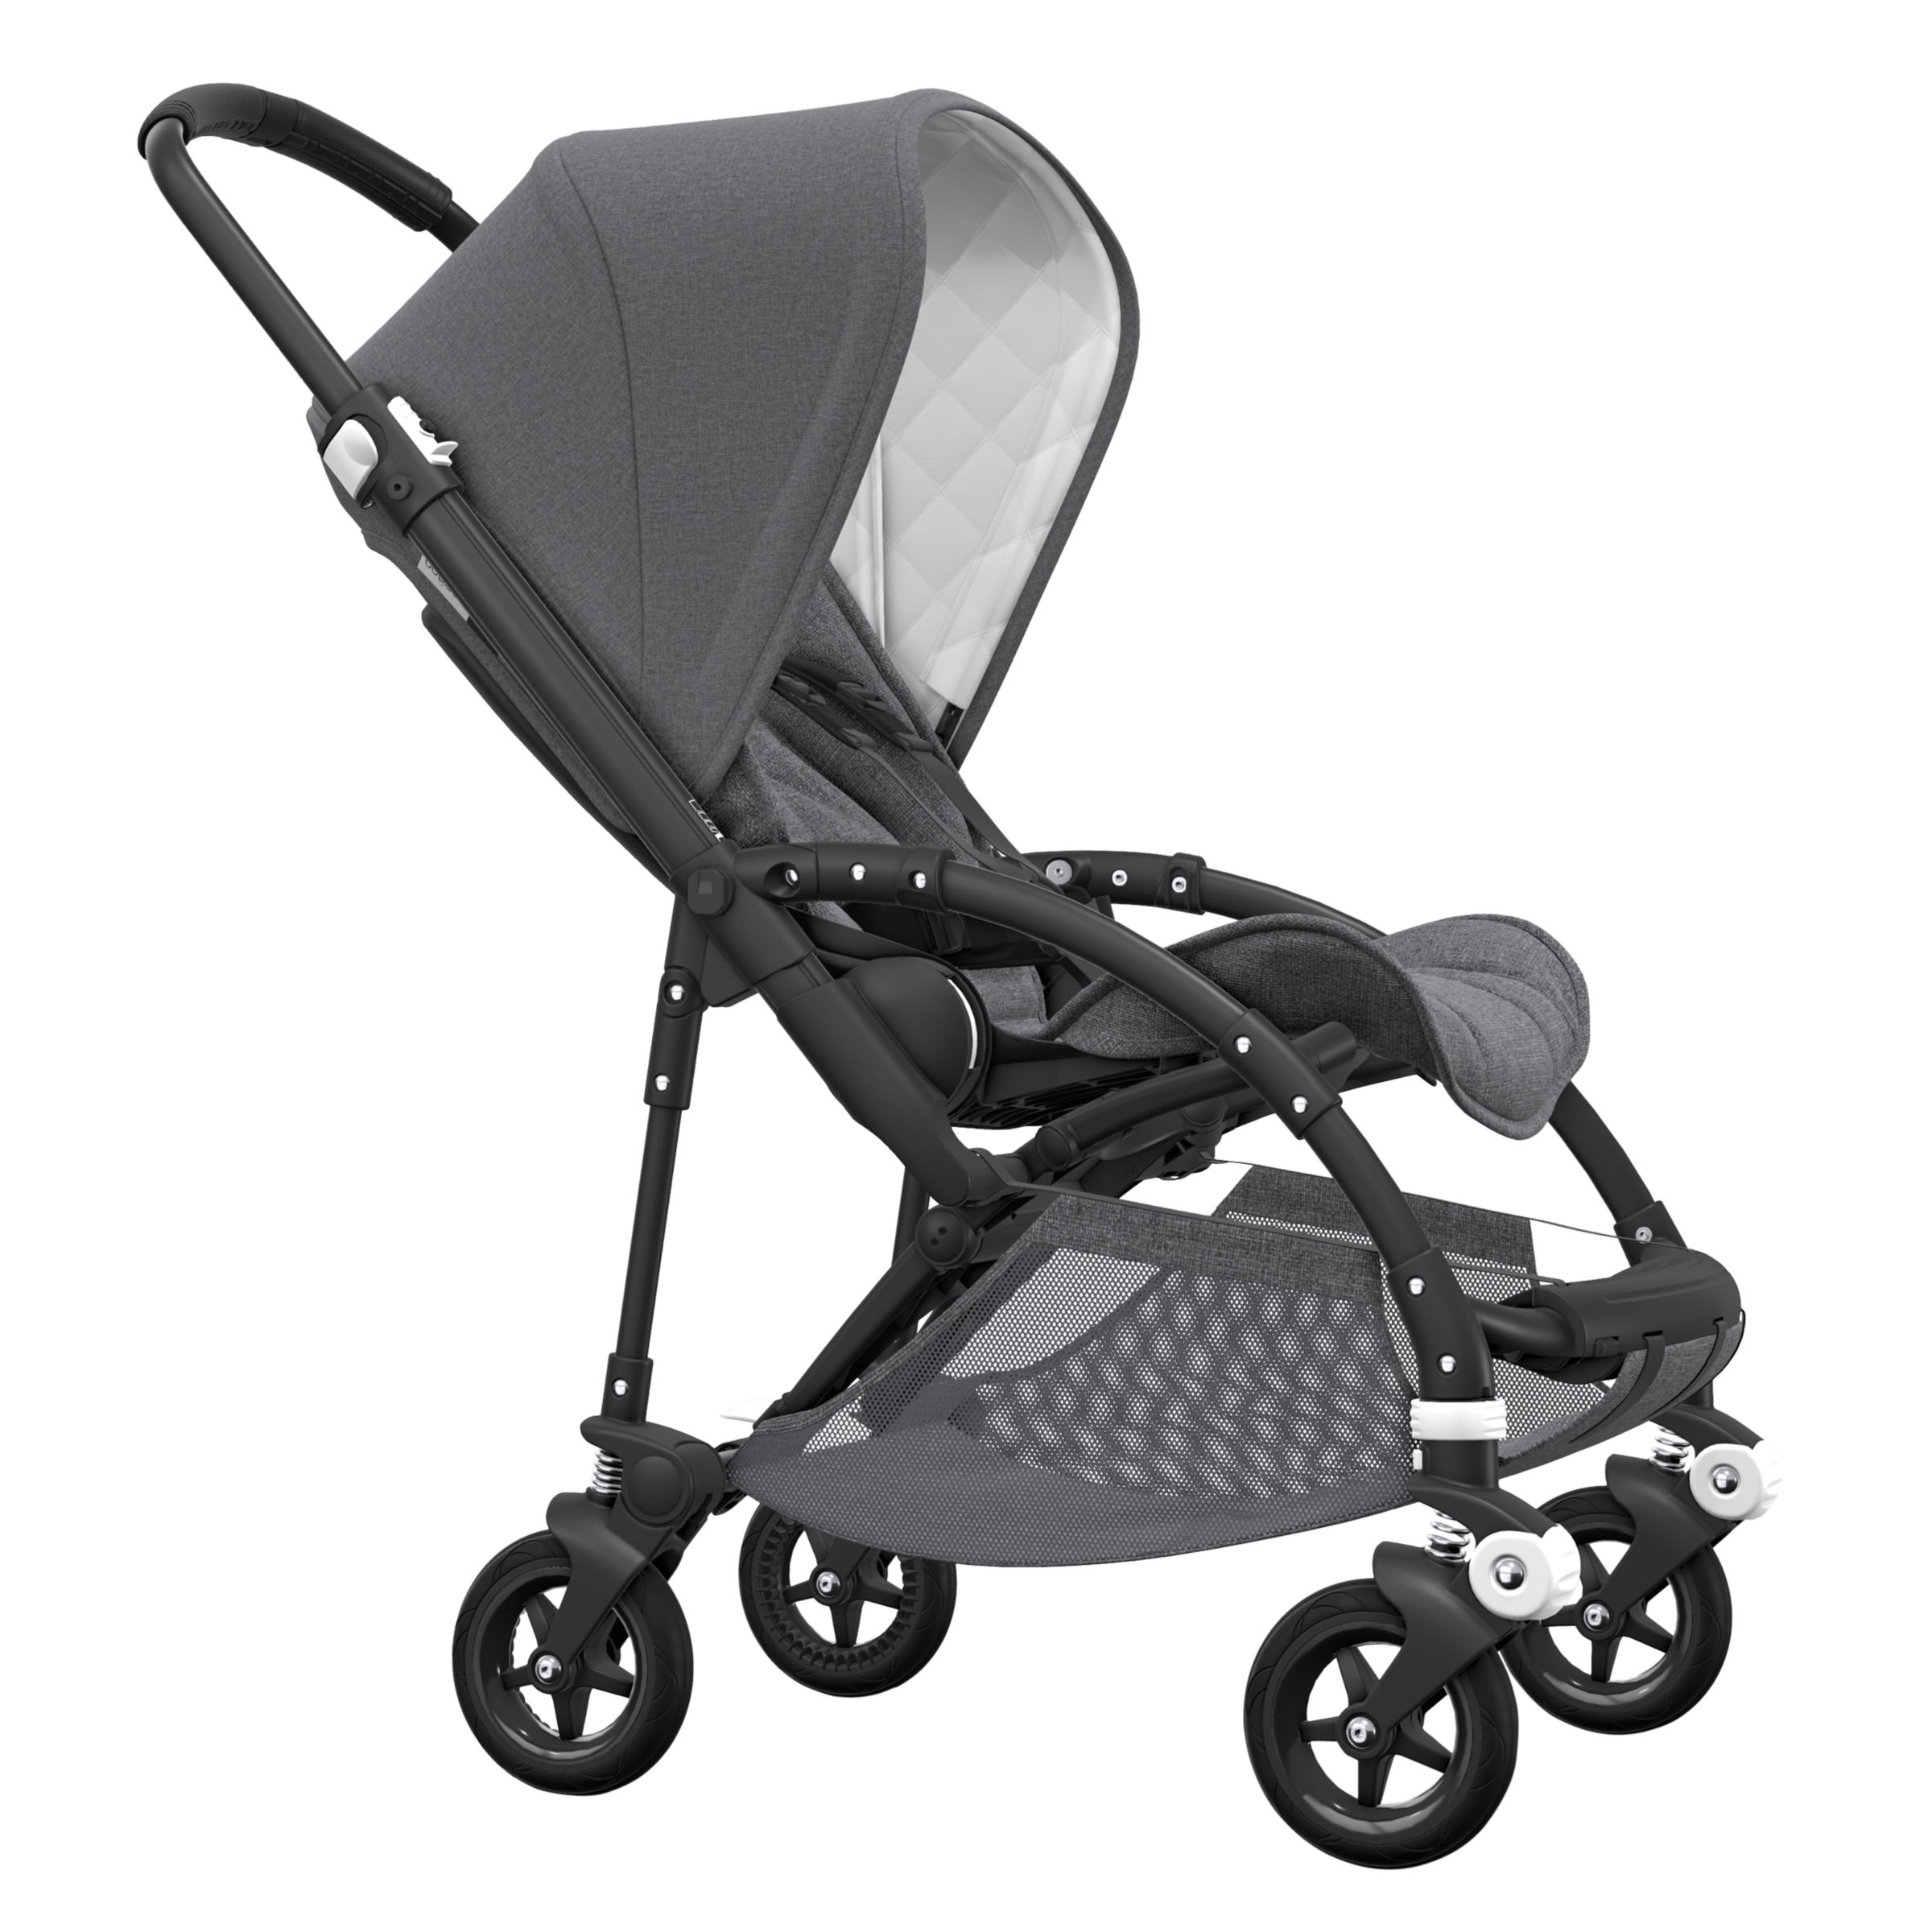 Bugaboo Bugaboo Bee 5 Classic Pushchair, Grey Melange/Black